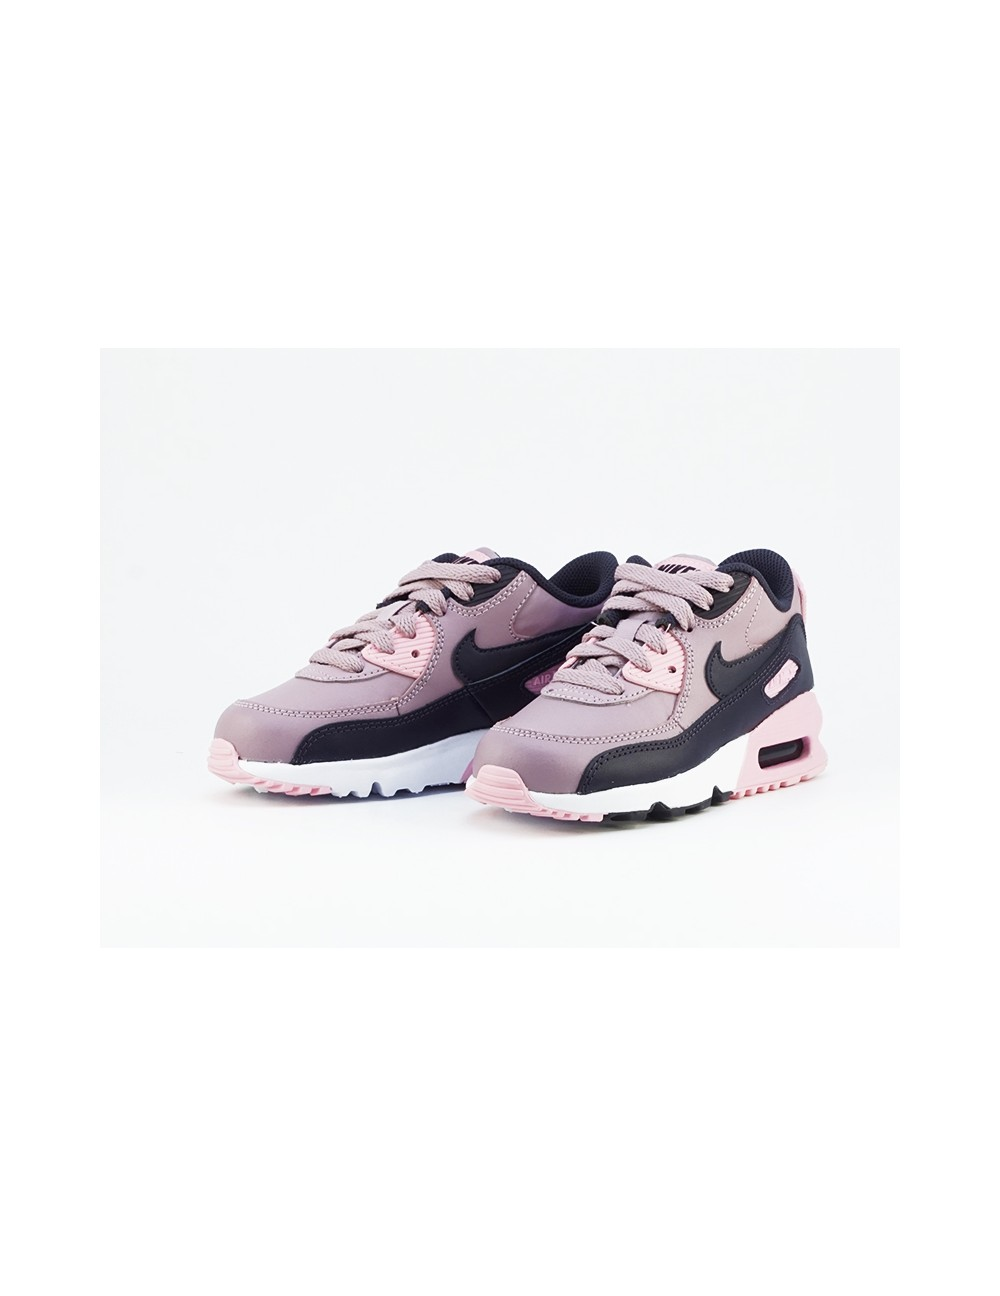 NIKE AIR MAX 90 LEATHER TD